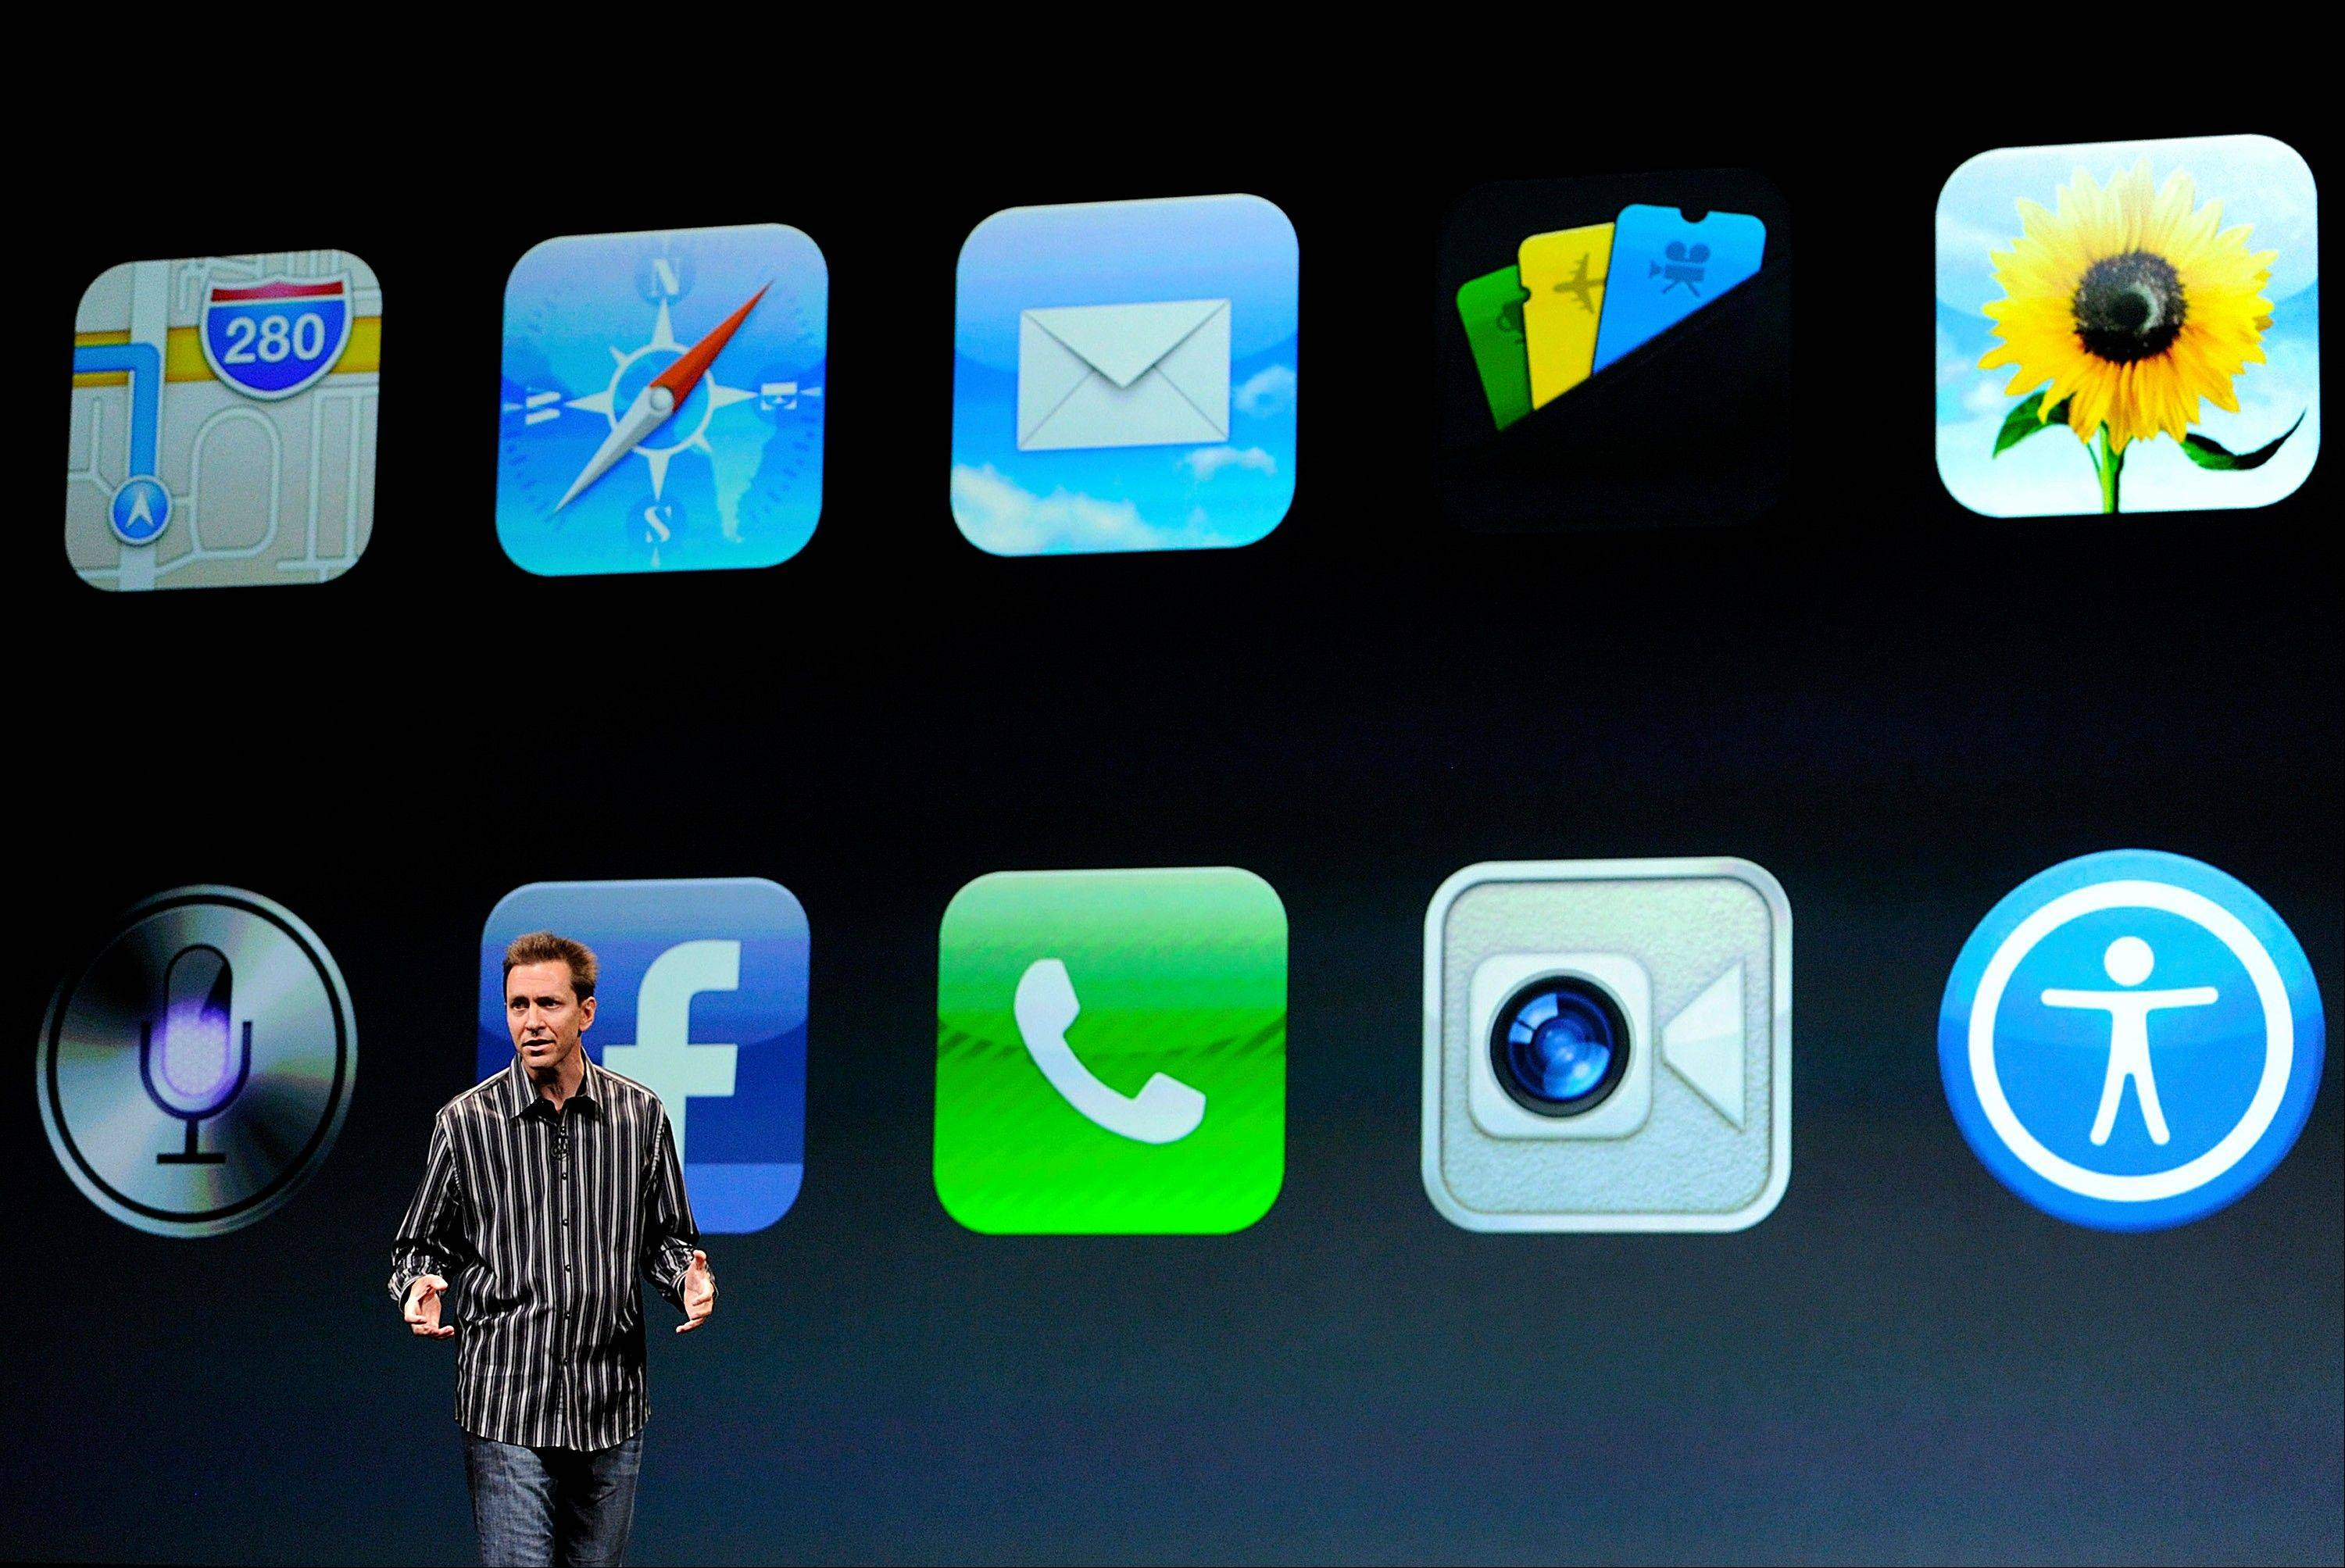 Scott Forstall, senior vice president of iPhone iOS Software at Apple Inc., speaks during an event in San Francisco, California, U.S., on Wednesday, Sept. 12, 2012.